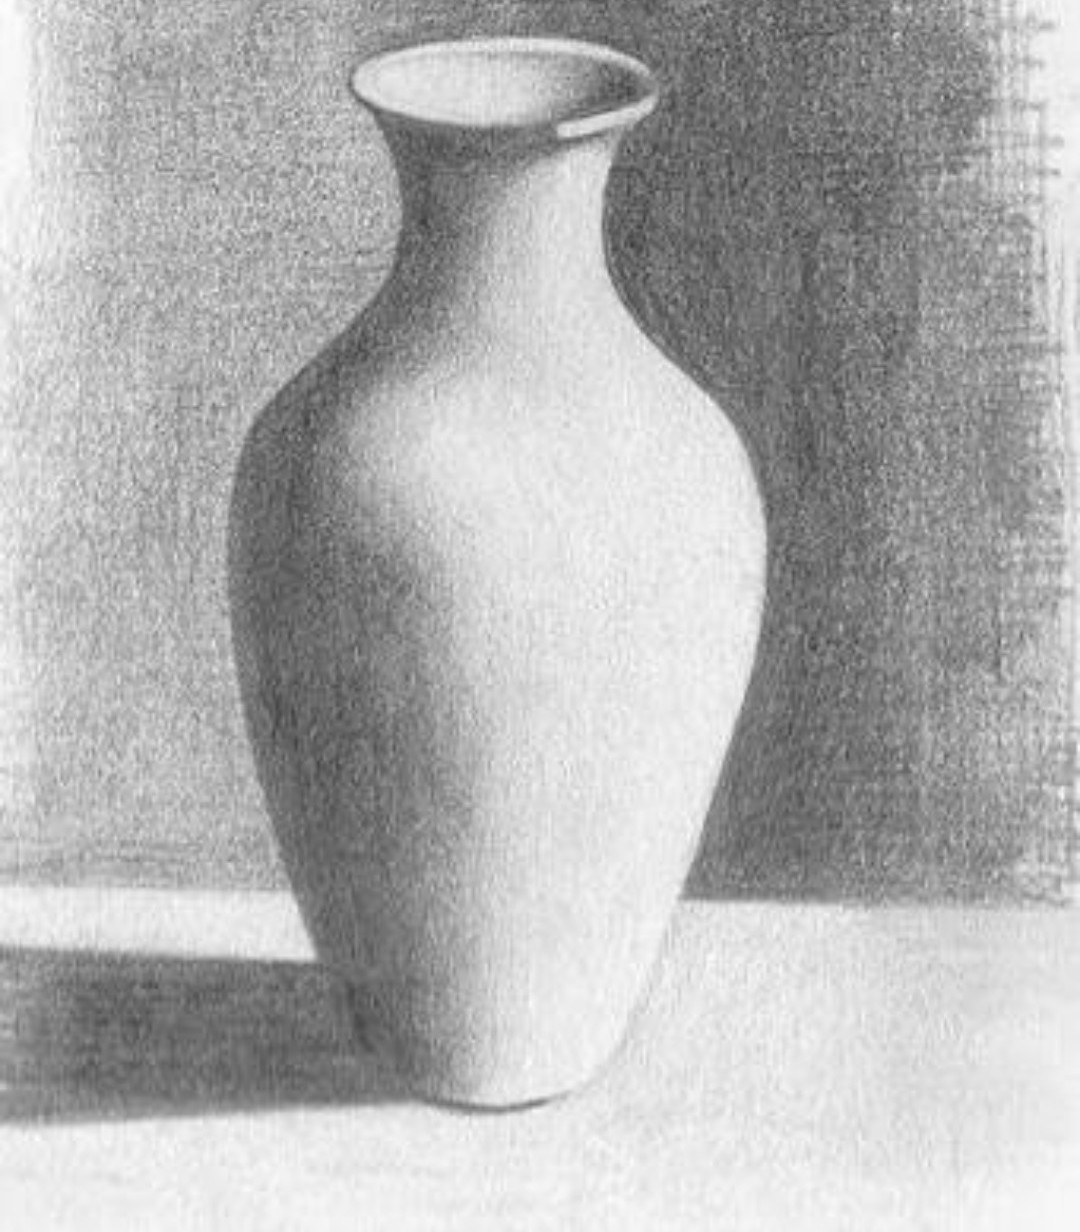 Pot and glass drawing with pencil shade brainly in